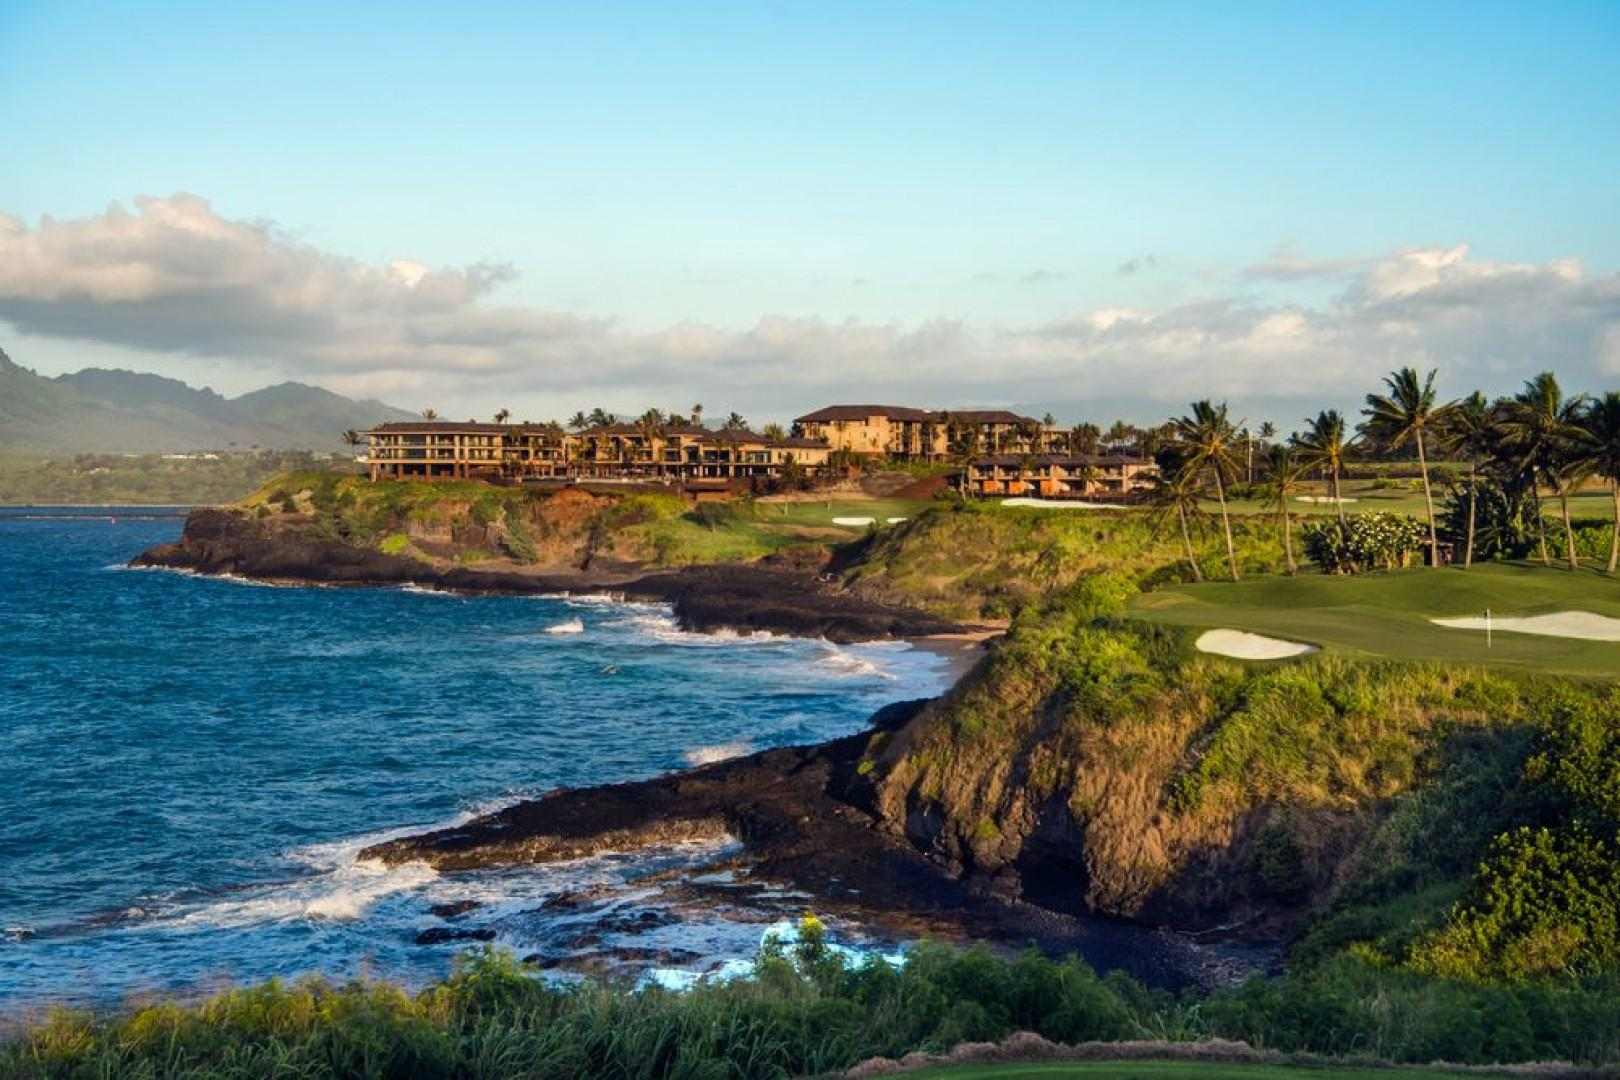 The exquisite section of Kauai's coastline occupied by Hokuala.